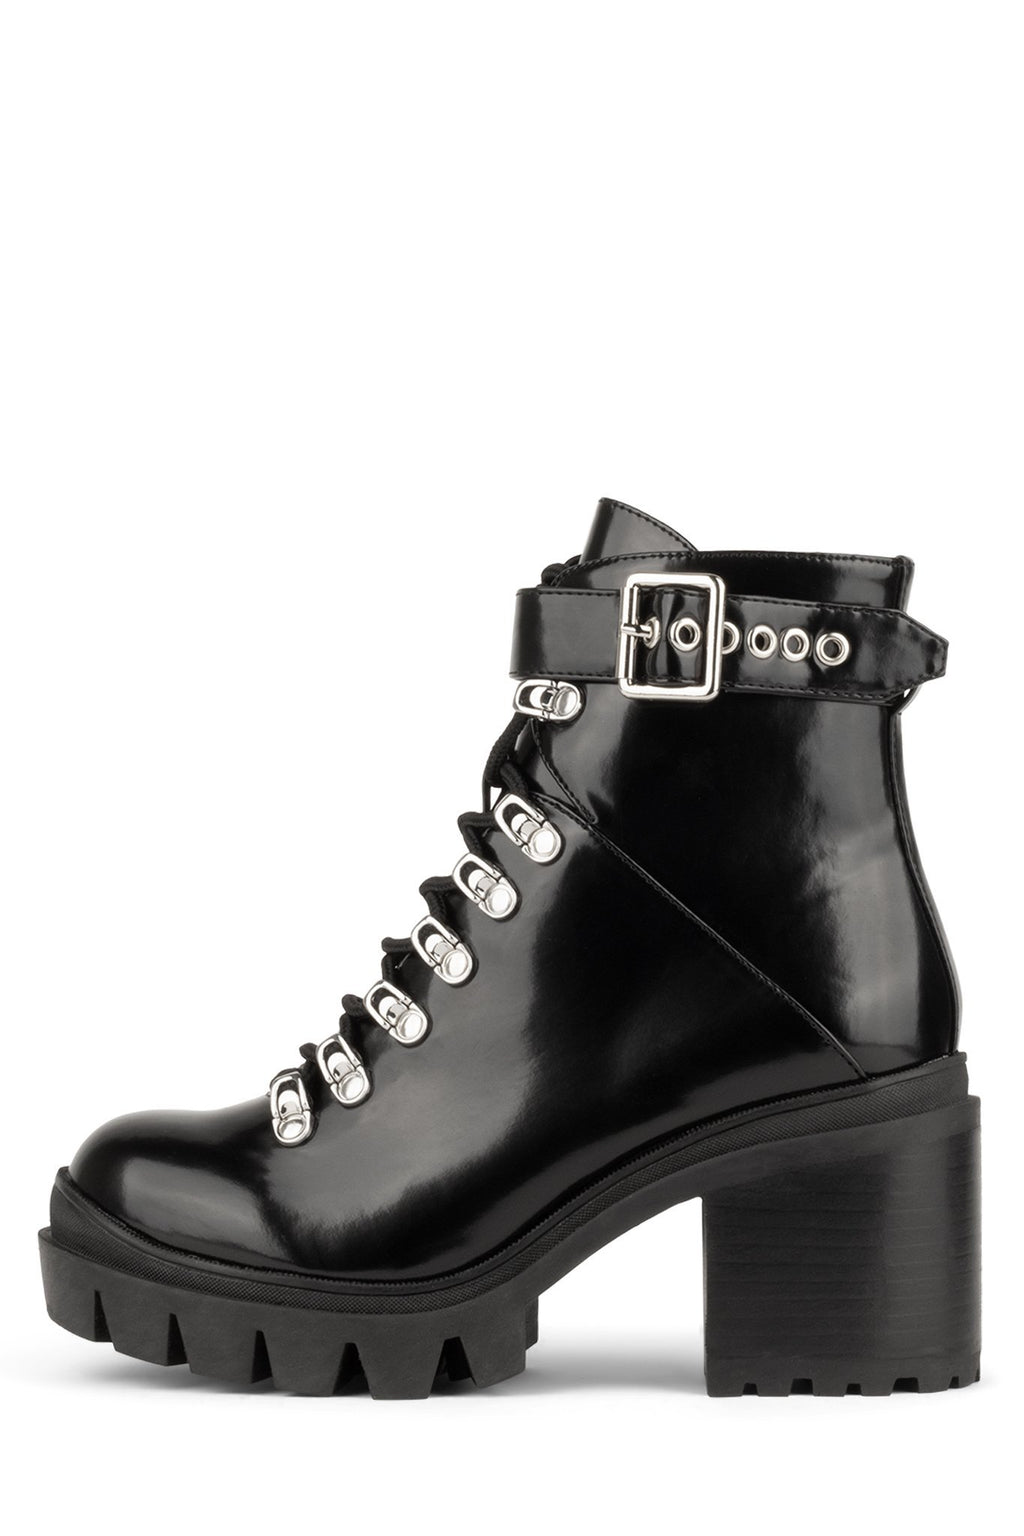 CZECH-HI Platform Boot HS Black Box 6